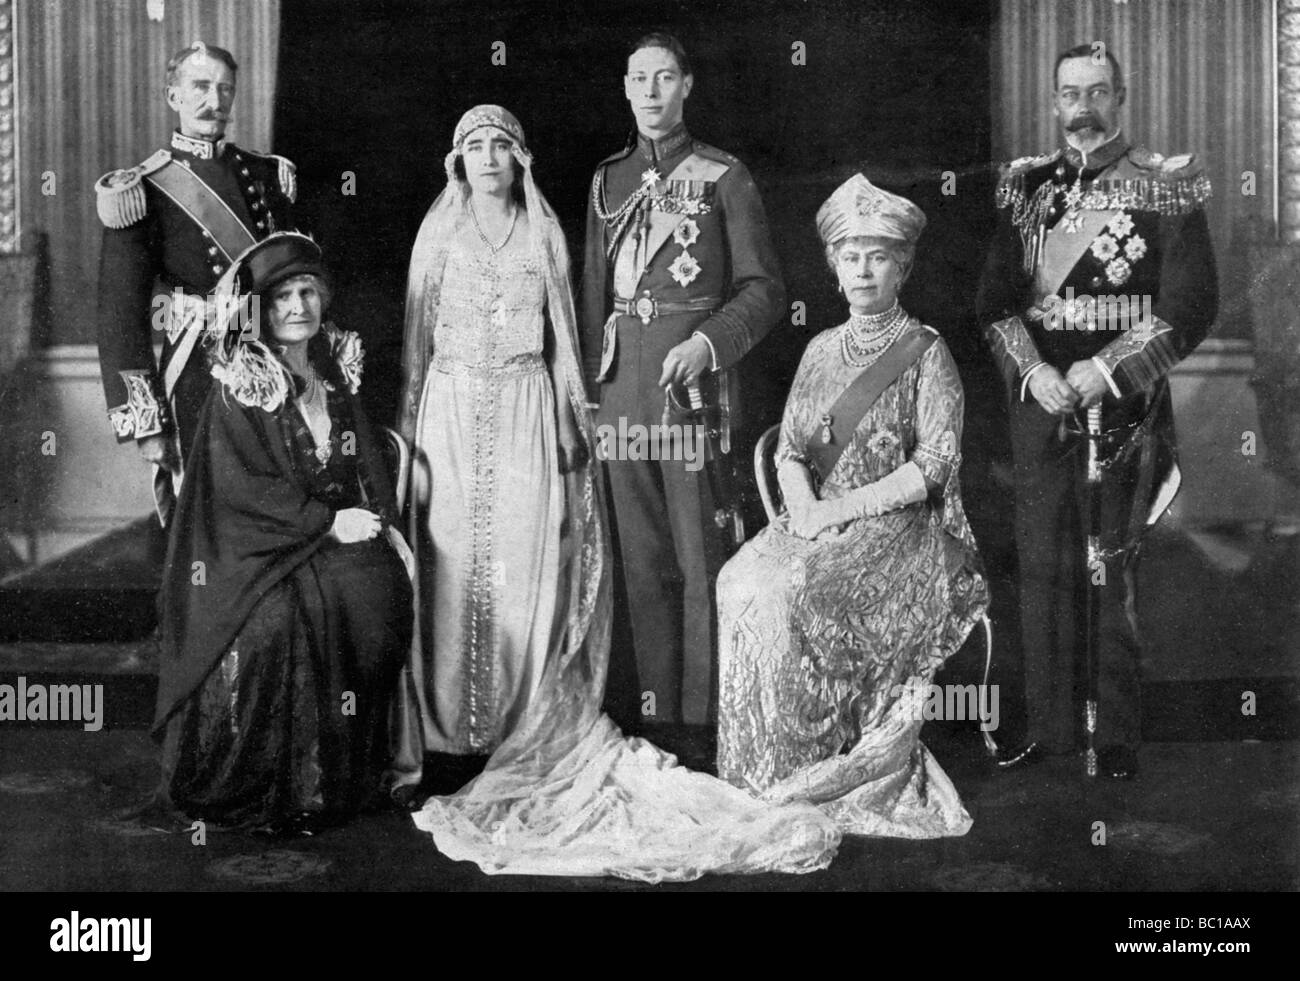 Fuente Kings And Queens: The Wedding Of The Duke Of York And Lady Elizabeth Bowes